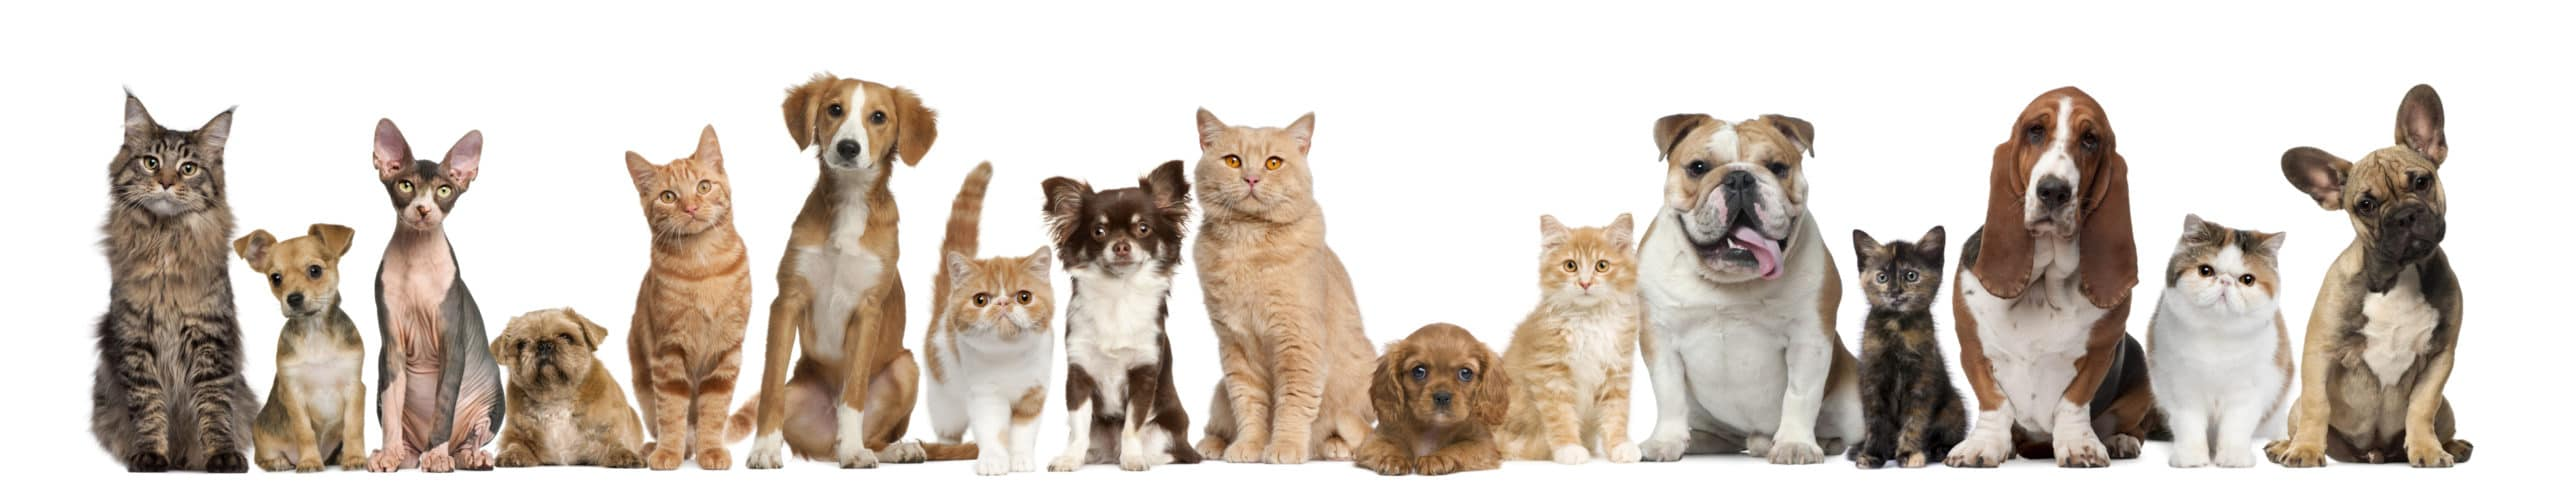 Picture of animals lined up